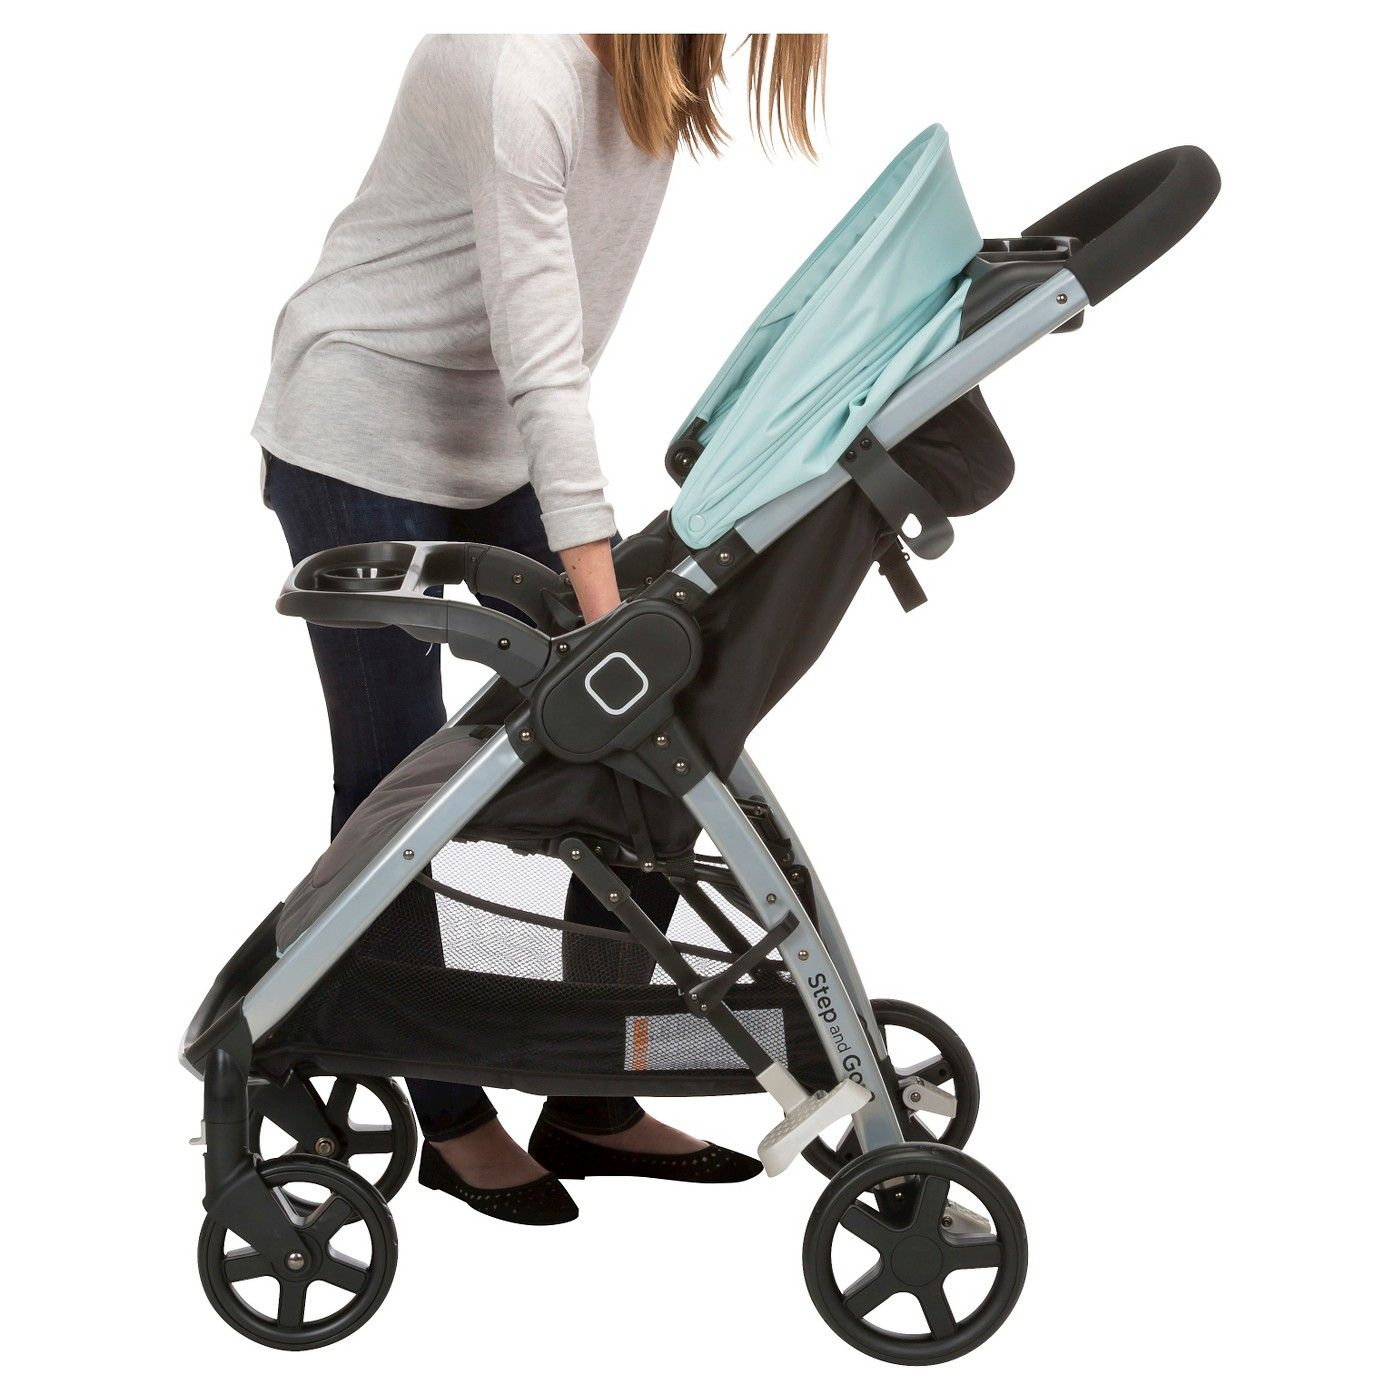 Safety 1st Stroller/Car Seat Combo Annabelle Travel System